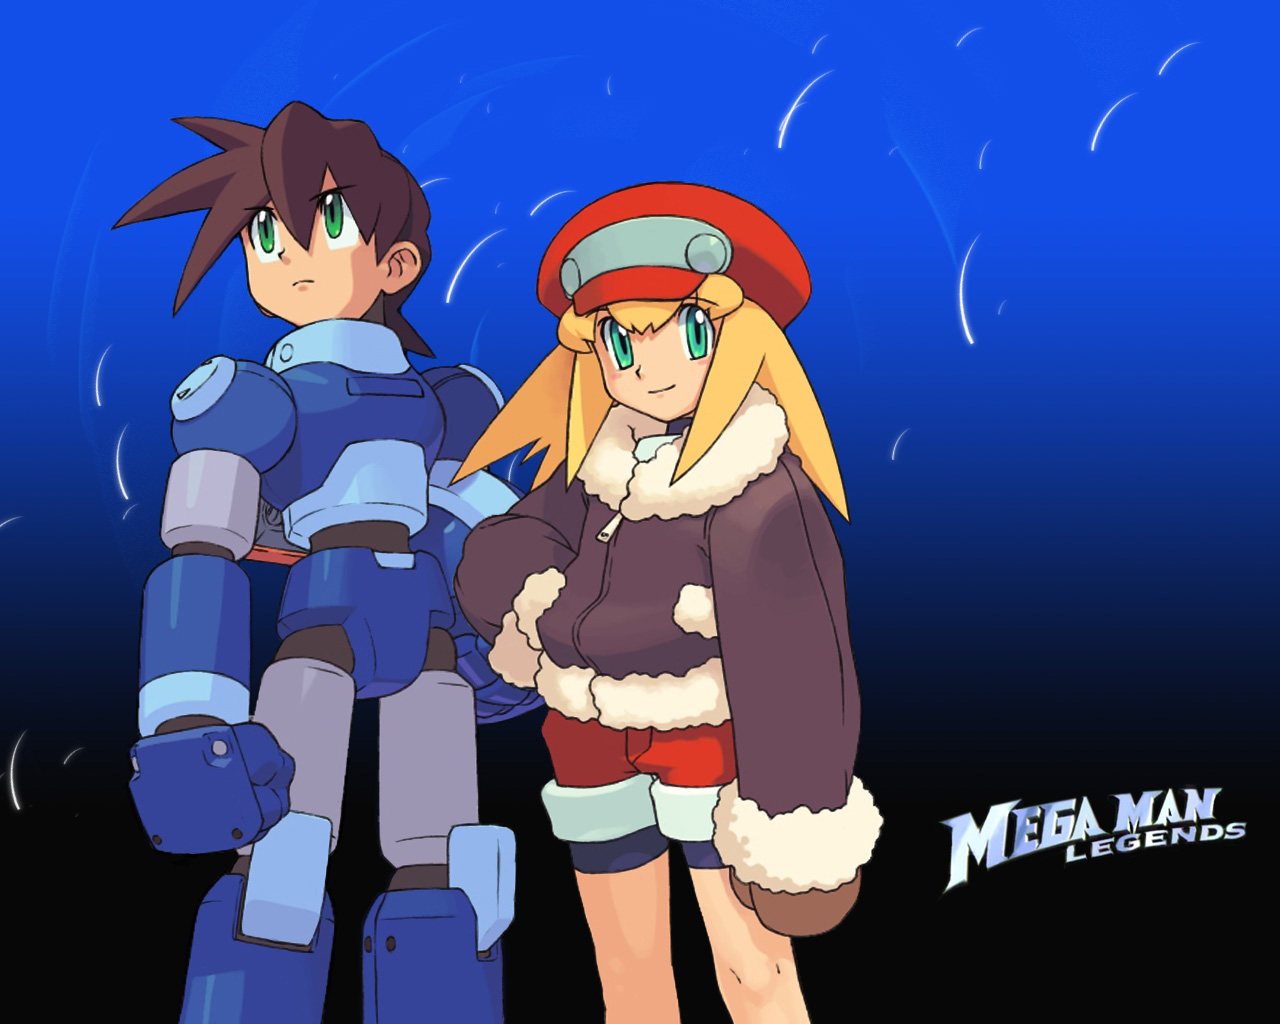 Tribute To Megaman Legends by Springs on DeviantArt